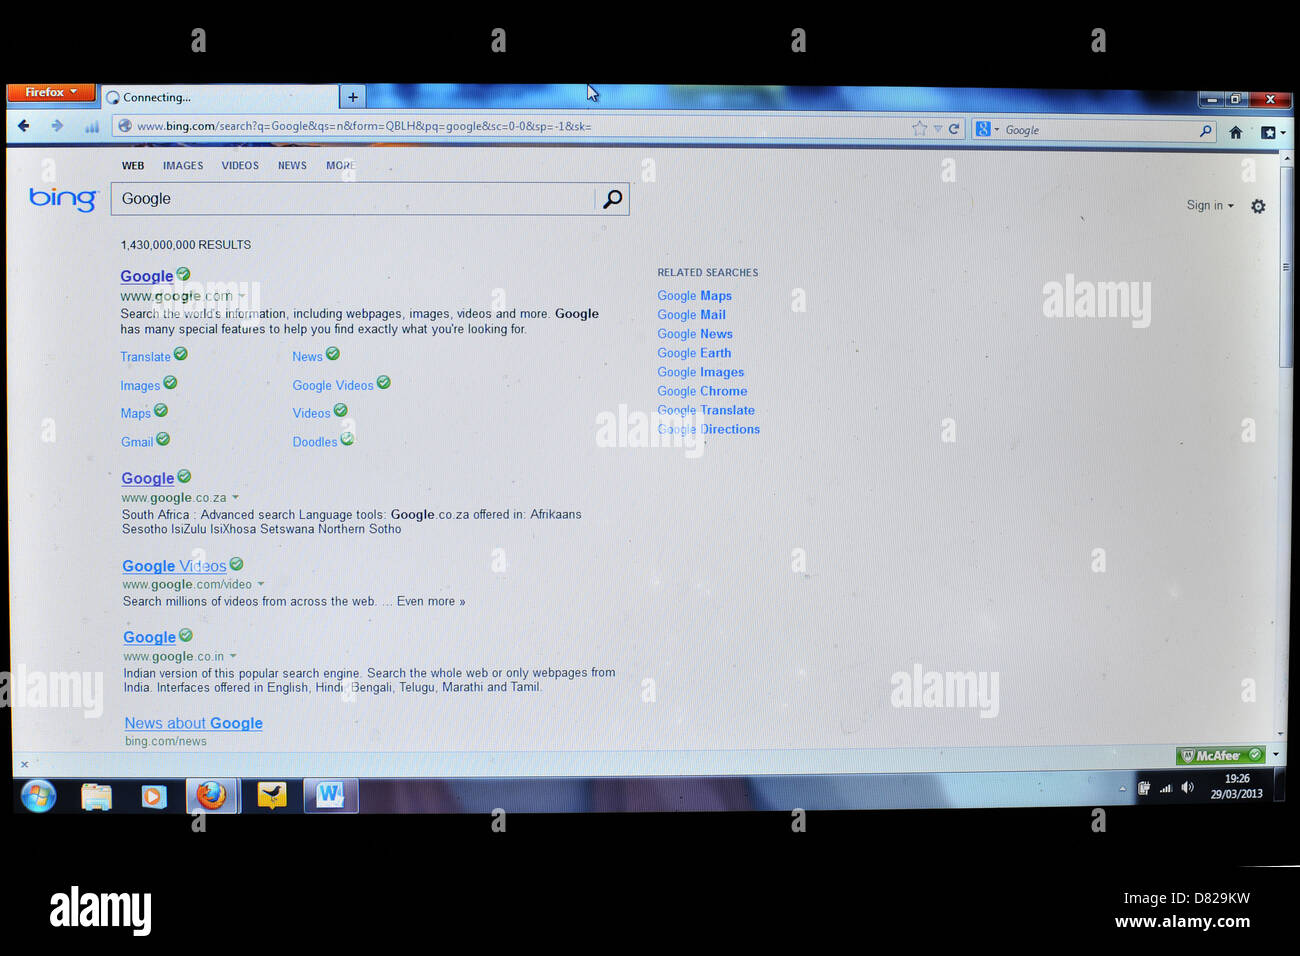 Image of a laptop screen showing Bing search engine. - Stock Image